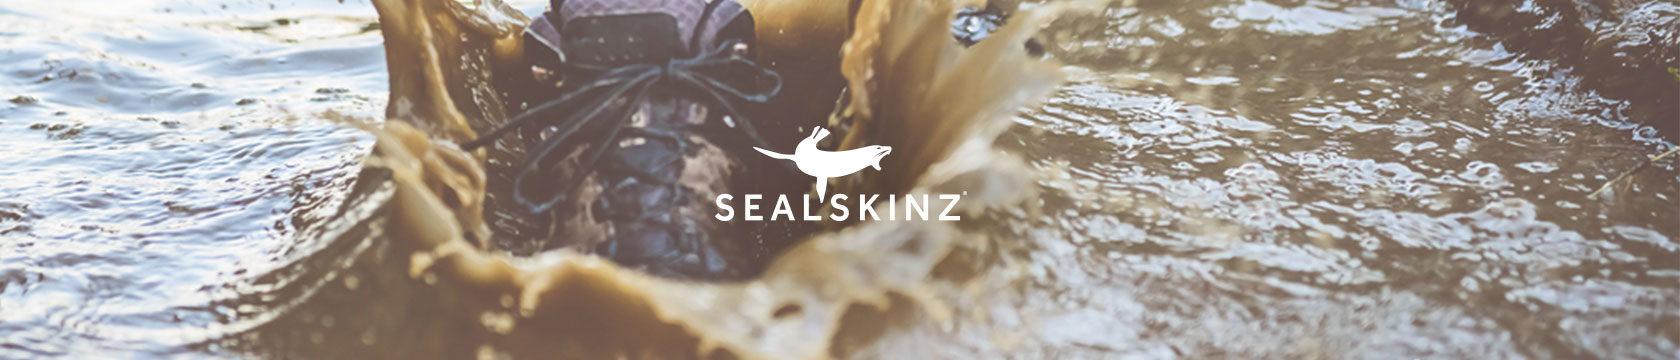 Splashing with Sealskinz.